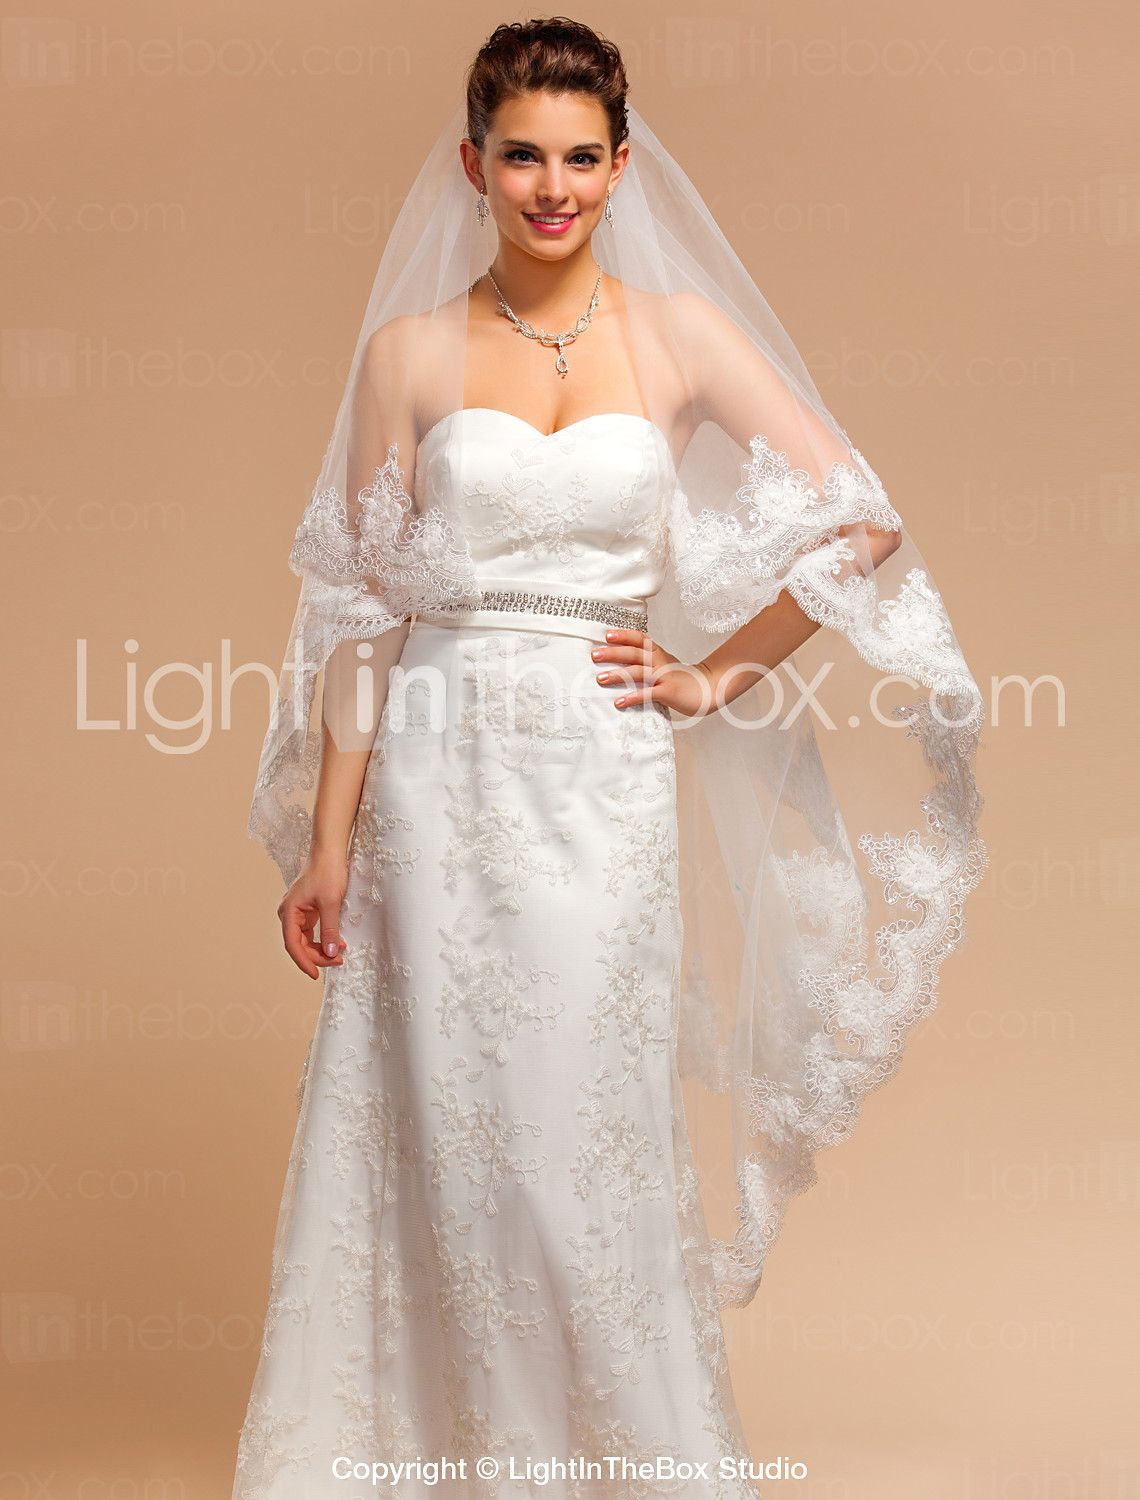 Long veil wedding dresses  Elegant Onetier Chapel Wedding Veils With Lace AppliqueFinished